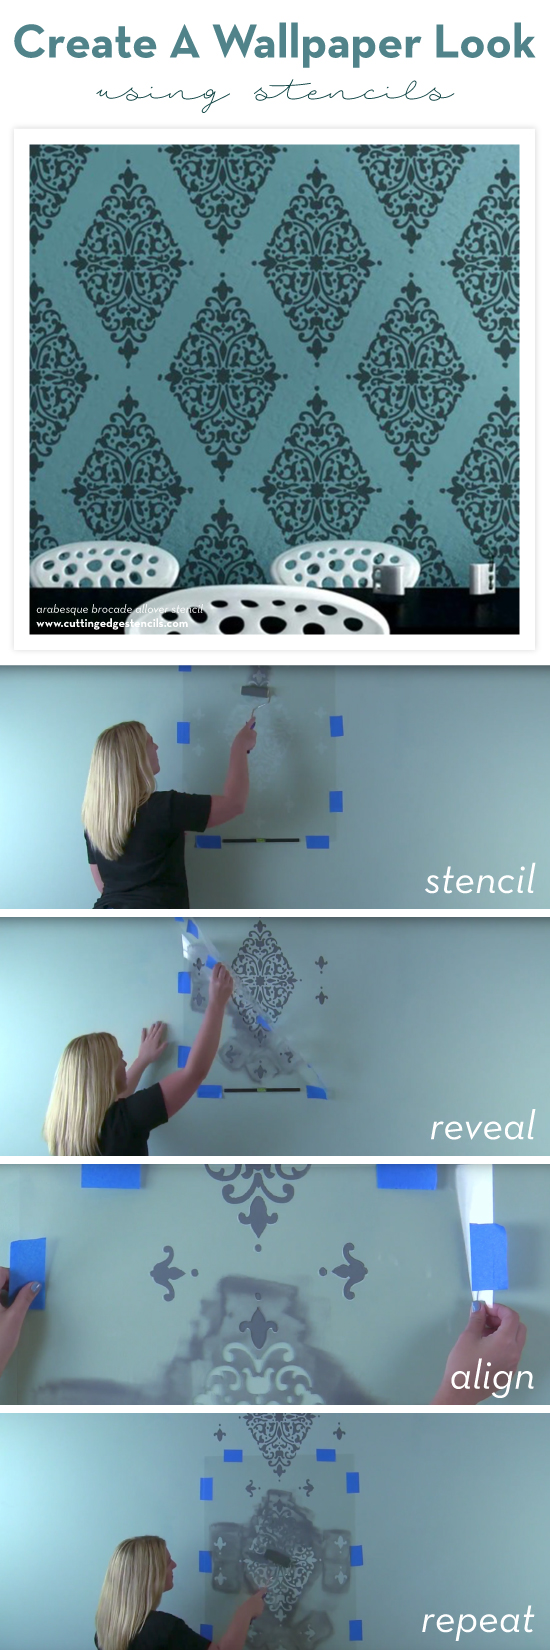 Cutting Edge Stencils shares how to stencil a wallpaper look on an accent wall using the Arabesque Brocade Damask Stencil. http://www.cuttingedgestencils.com/damask-stencil-arabesque-brocade-moroccan-stencils-for-walls.html